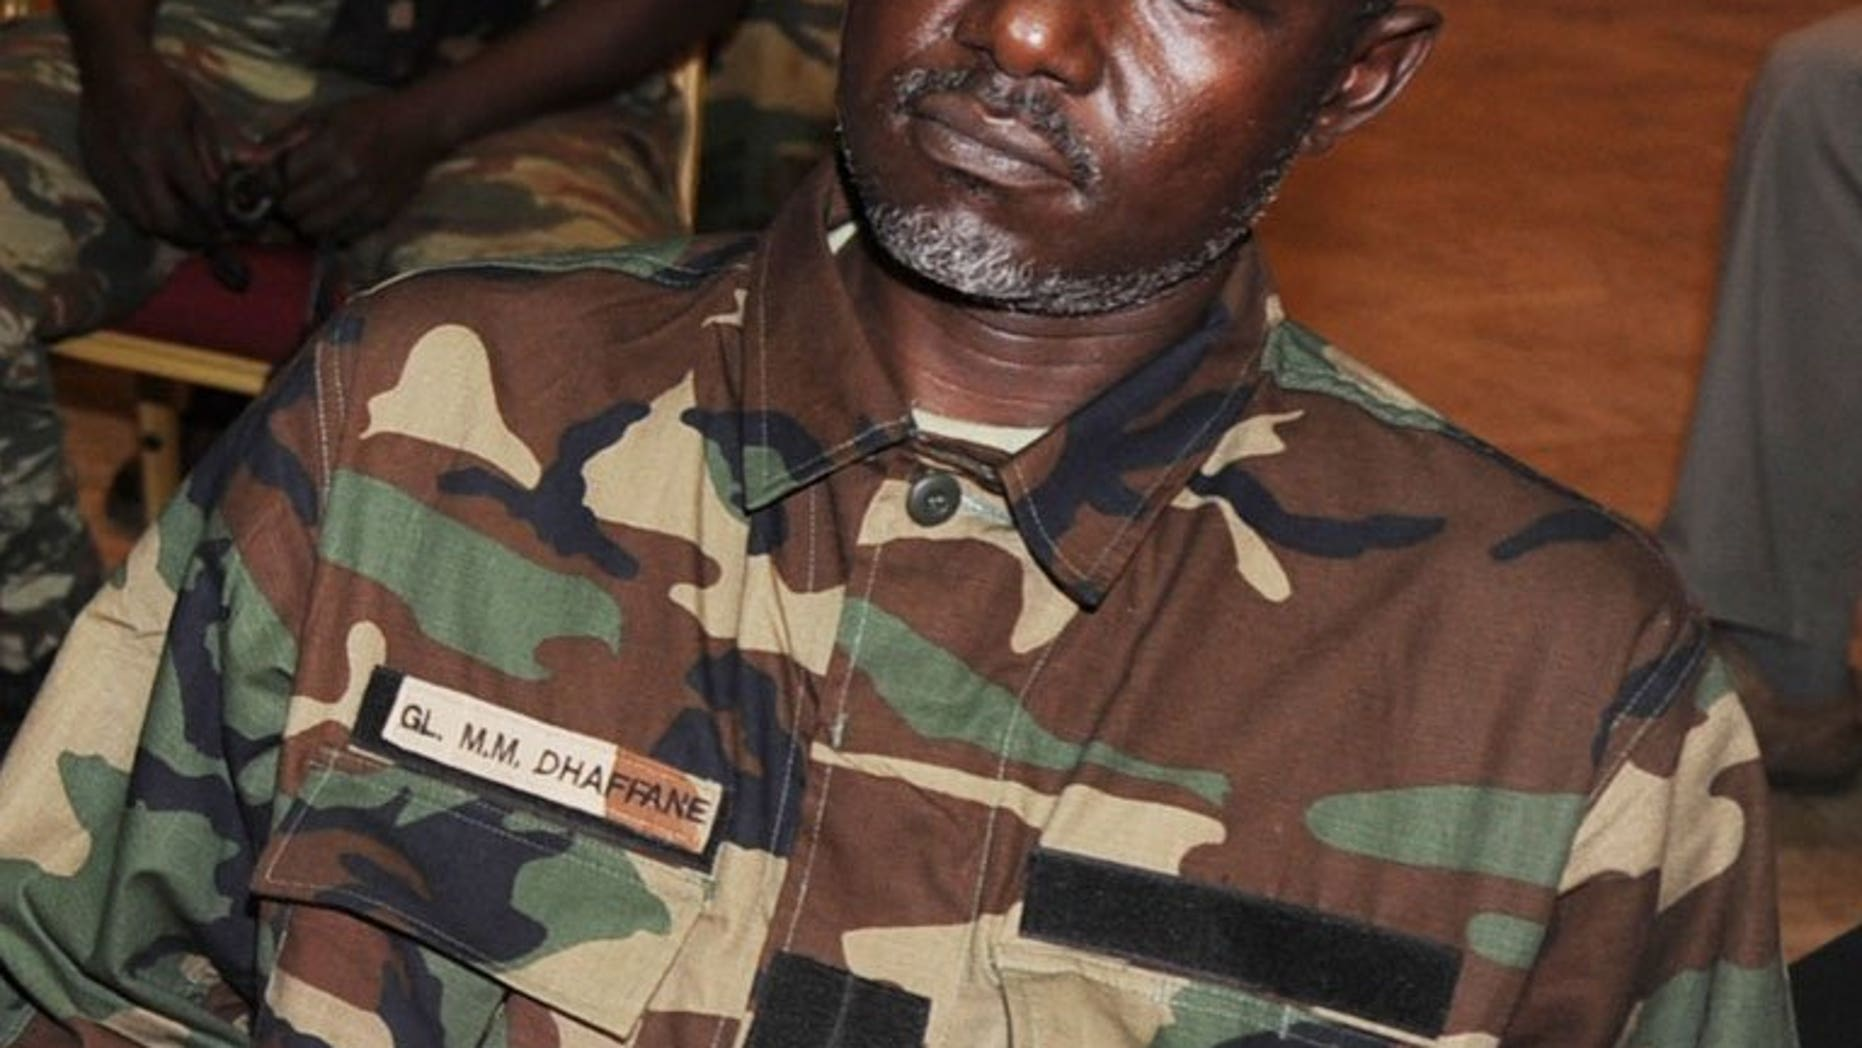 Water and forestry minister Mohamed Dhaffane, a Central African minister from the former rebel coalition that seized power, pictured in Liberville on January 9, 2013, was arrested and sacked on Sunday, as tensions mount in the troubled country.